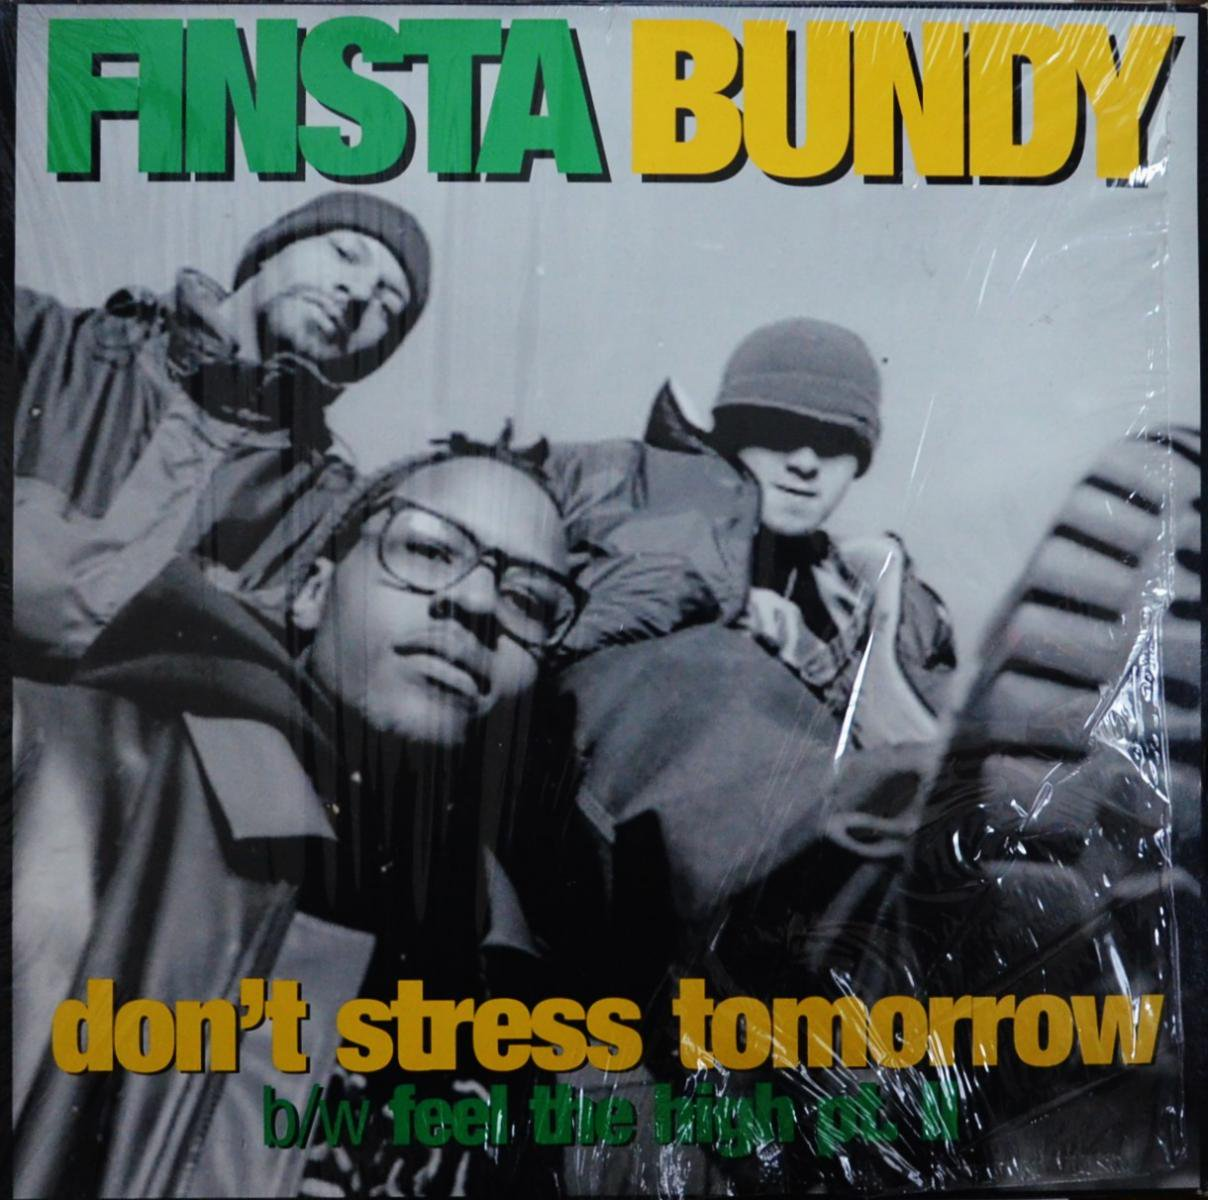 FINSTA BUNDY / DON'T STRESS TOMORROW (12